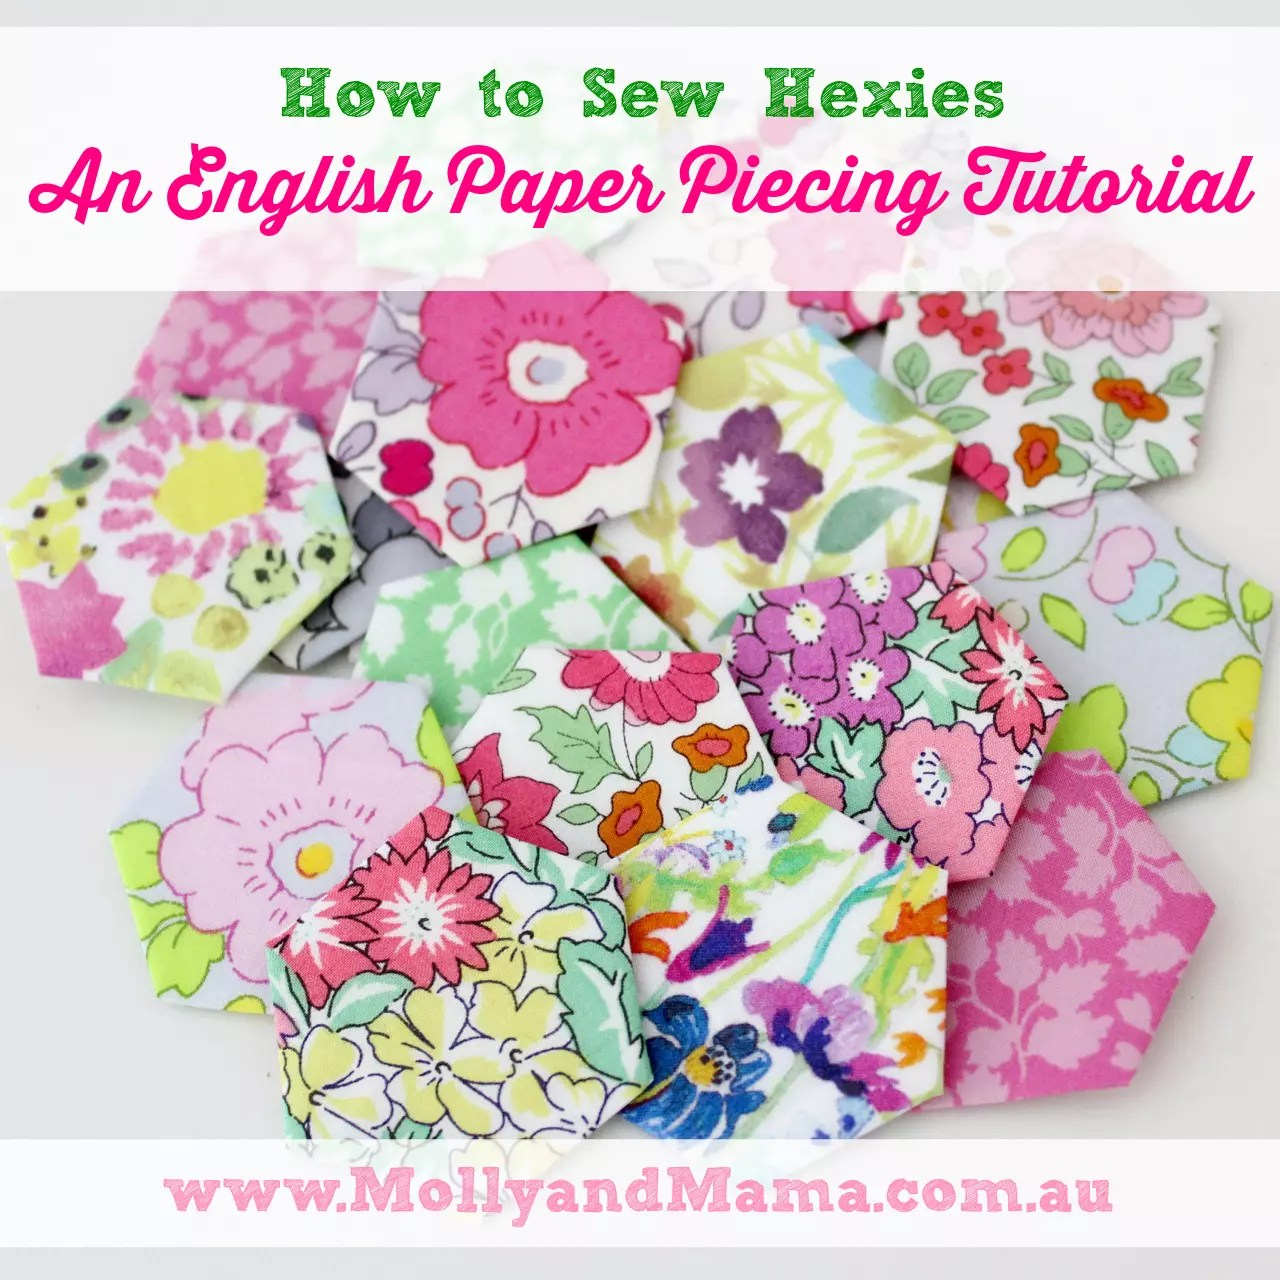 How to sew hexies an english paper piecing tutorial molly and mama how to sew hexies an english paper piecing tutorial jeuxipadfo Choice Image